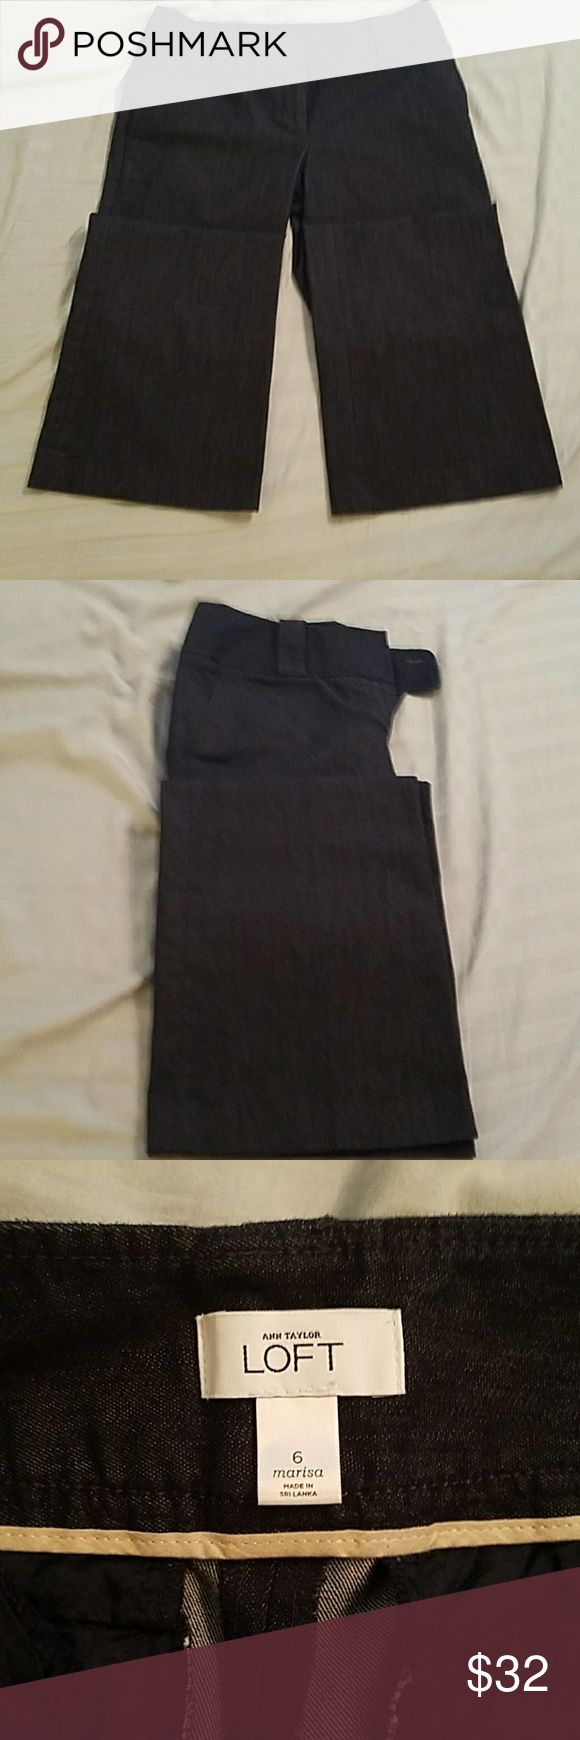 Anne Taylor Loft marisa jean Anne Taylor Loft marisa jean. Size 6. Very wide leg. Jeans are in great condition. Great for a dressy look. LOFT Pants